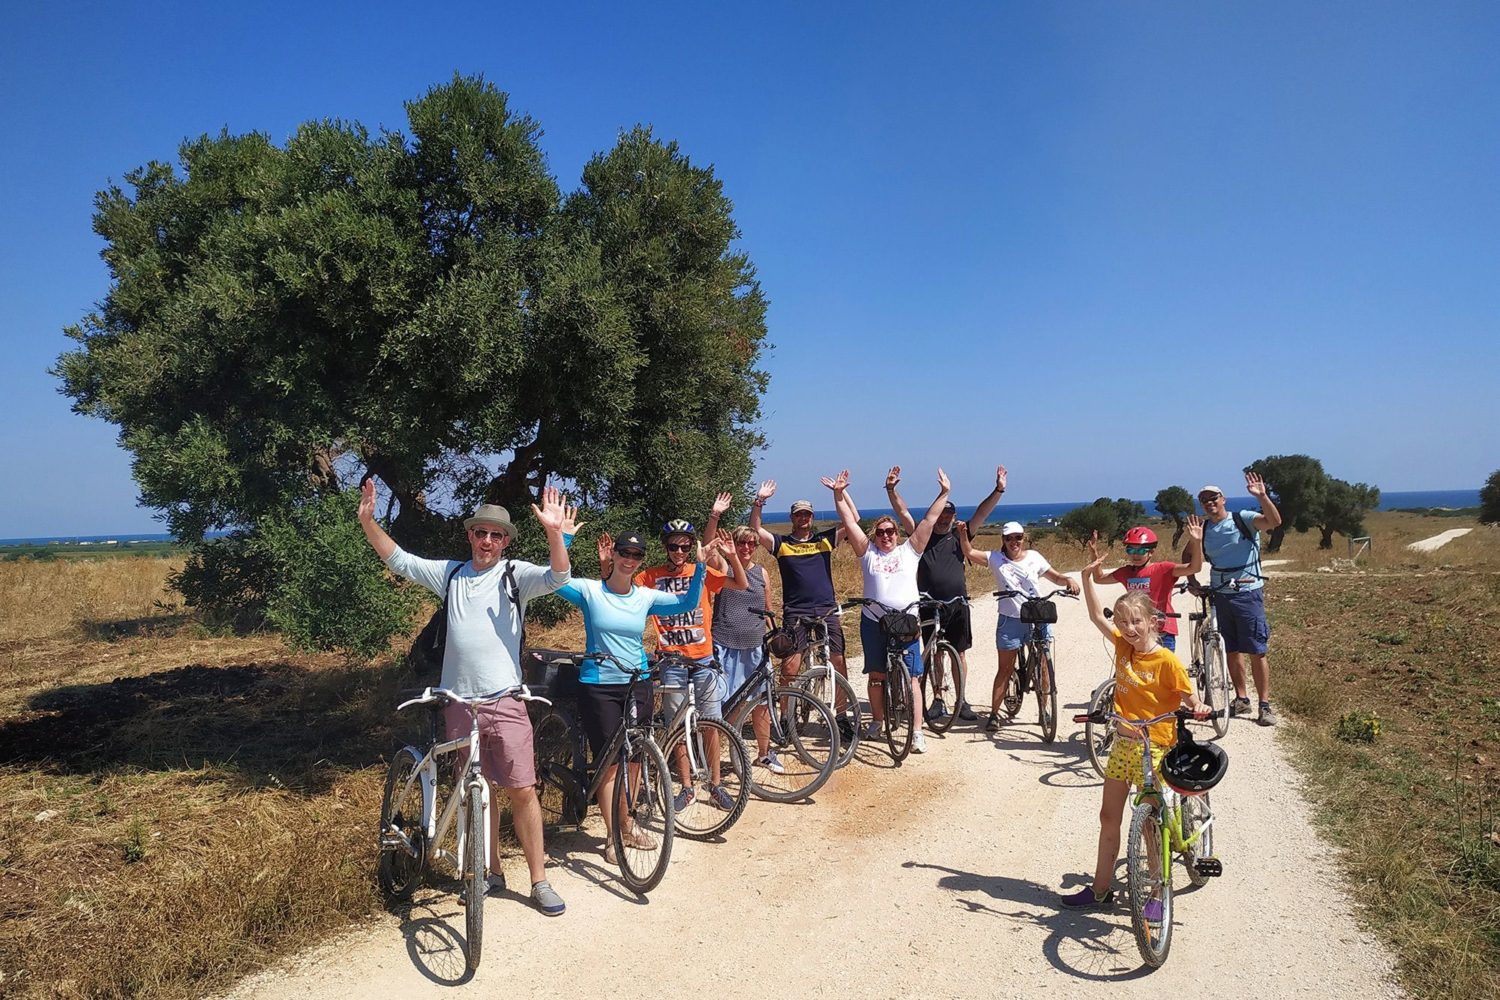 Apulia on bike tours